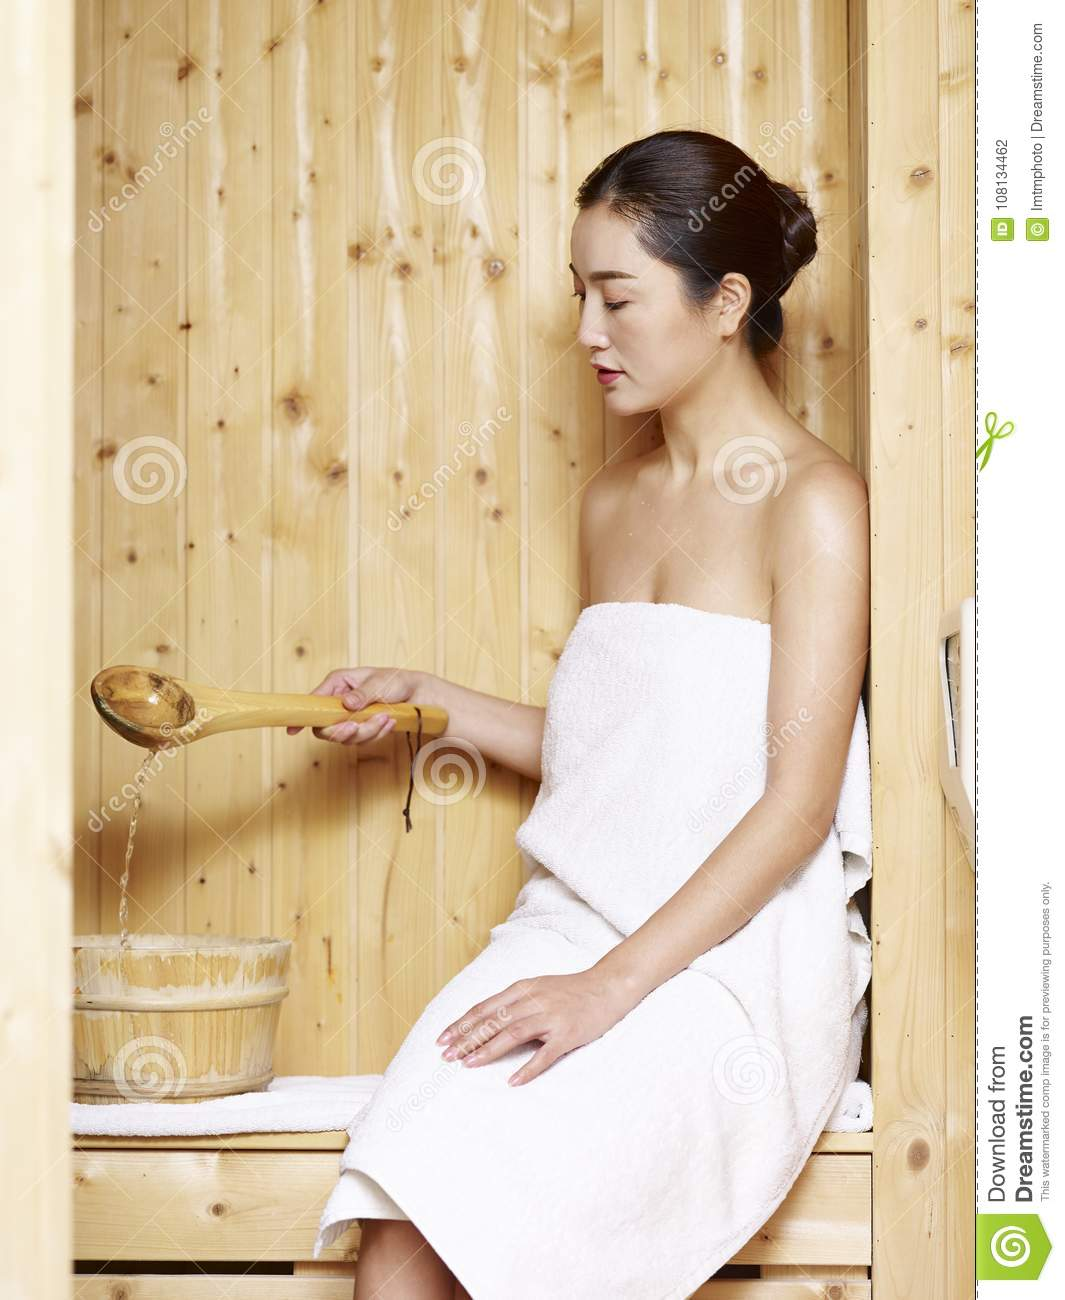 sitting Nude Stock Images, Royalty-Free Images & Vectors